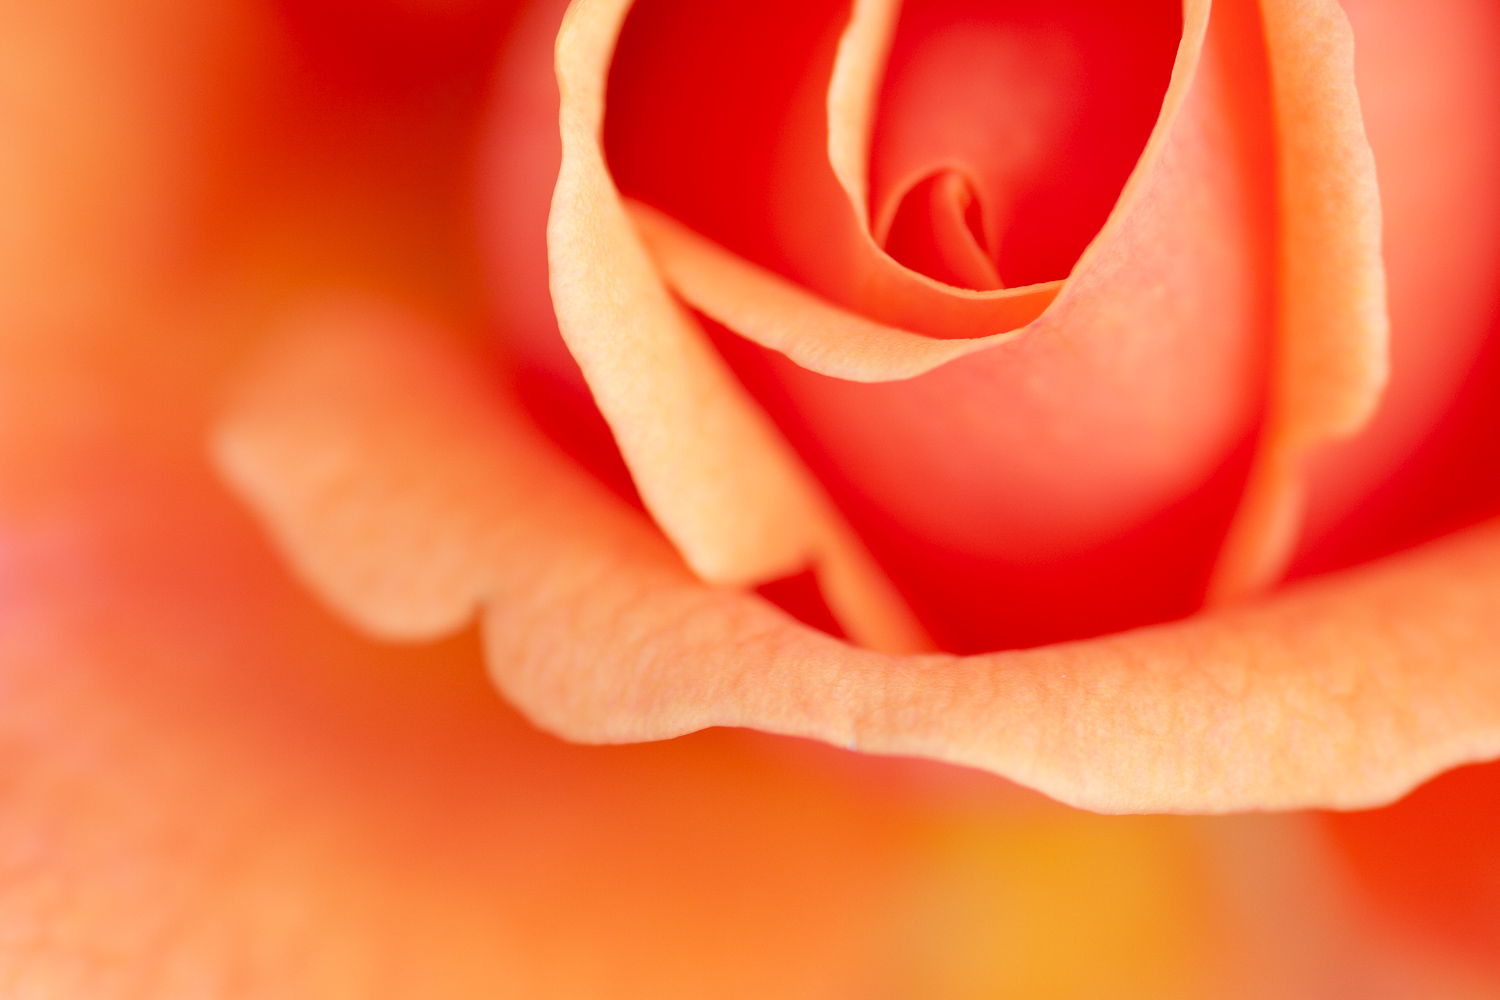 rose abstract - 5 Ways to Make Extraordinary Photographs of Ordinary Subjects